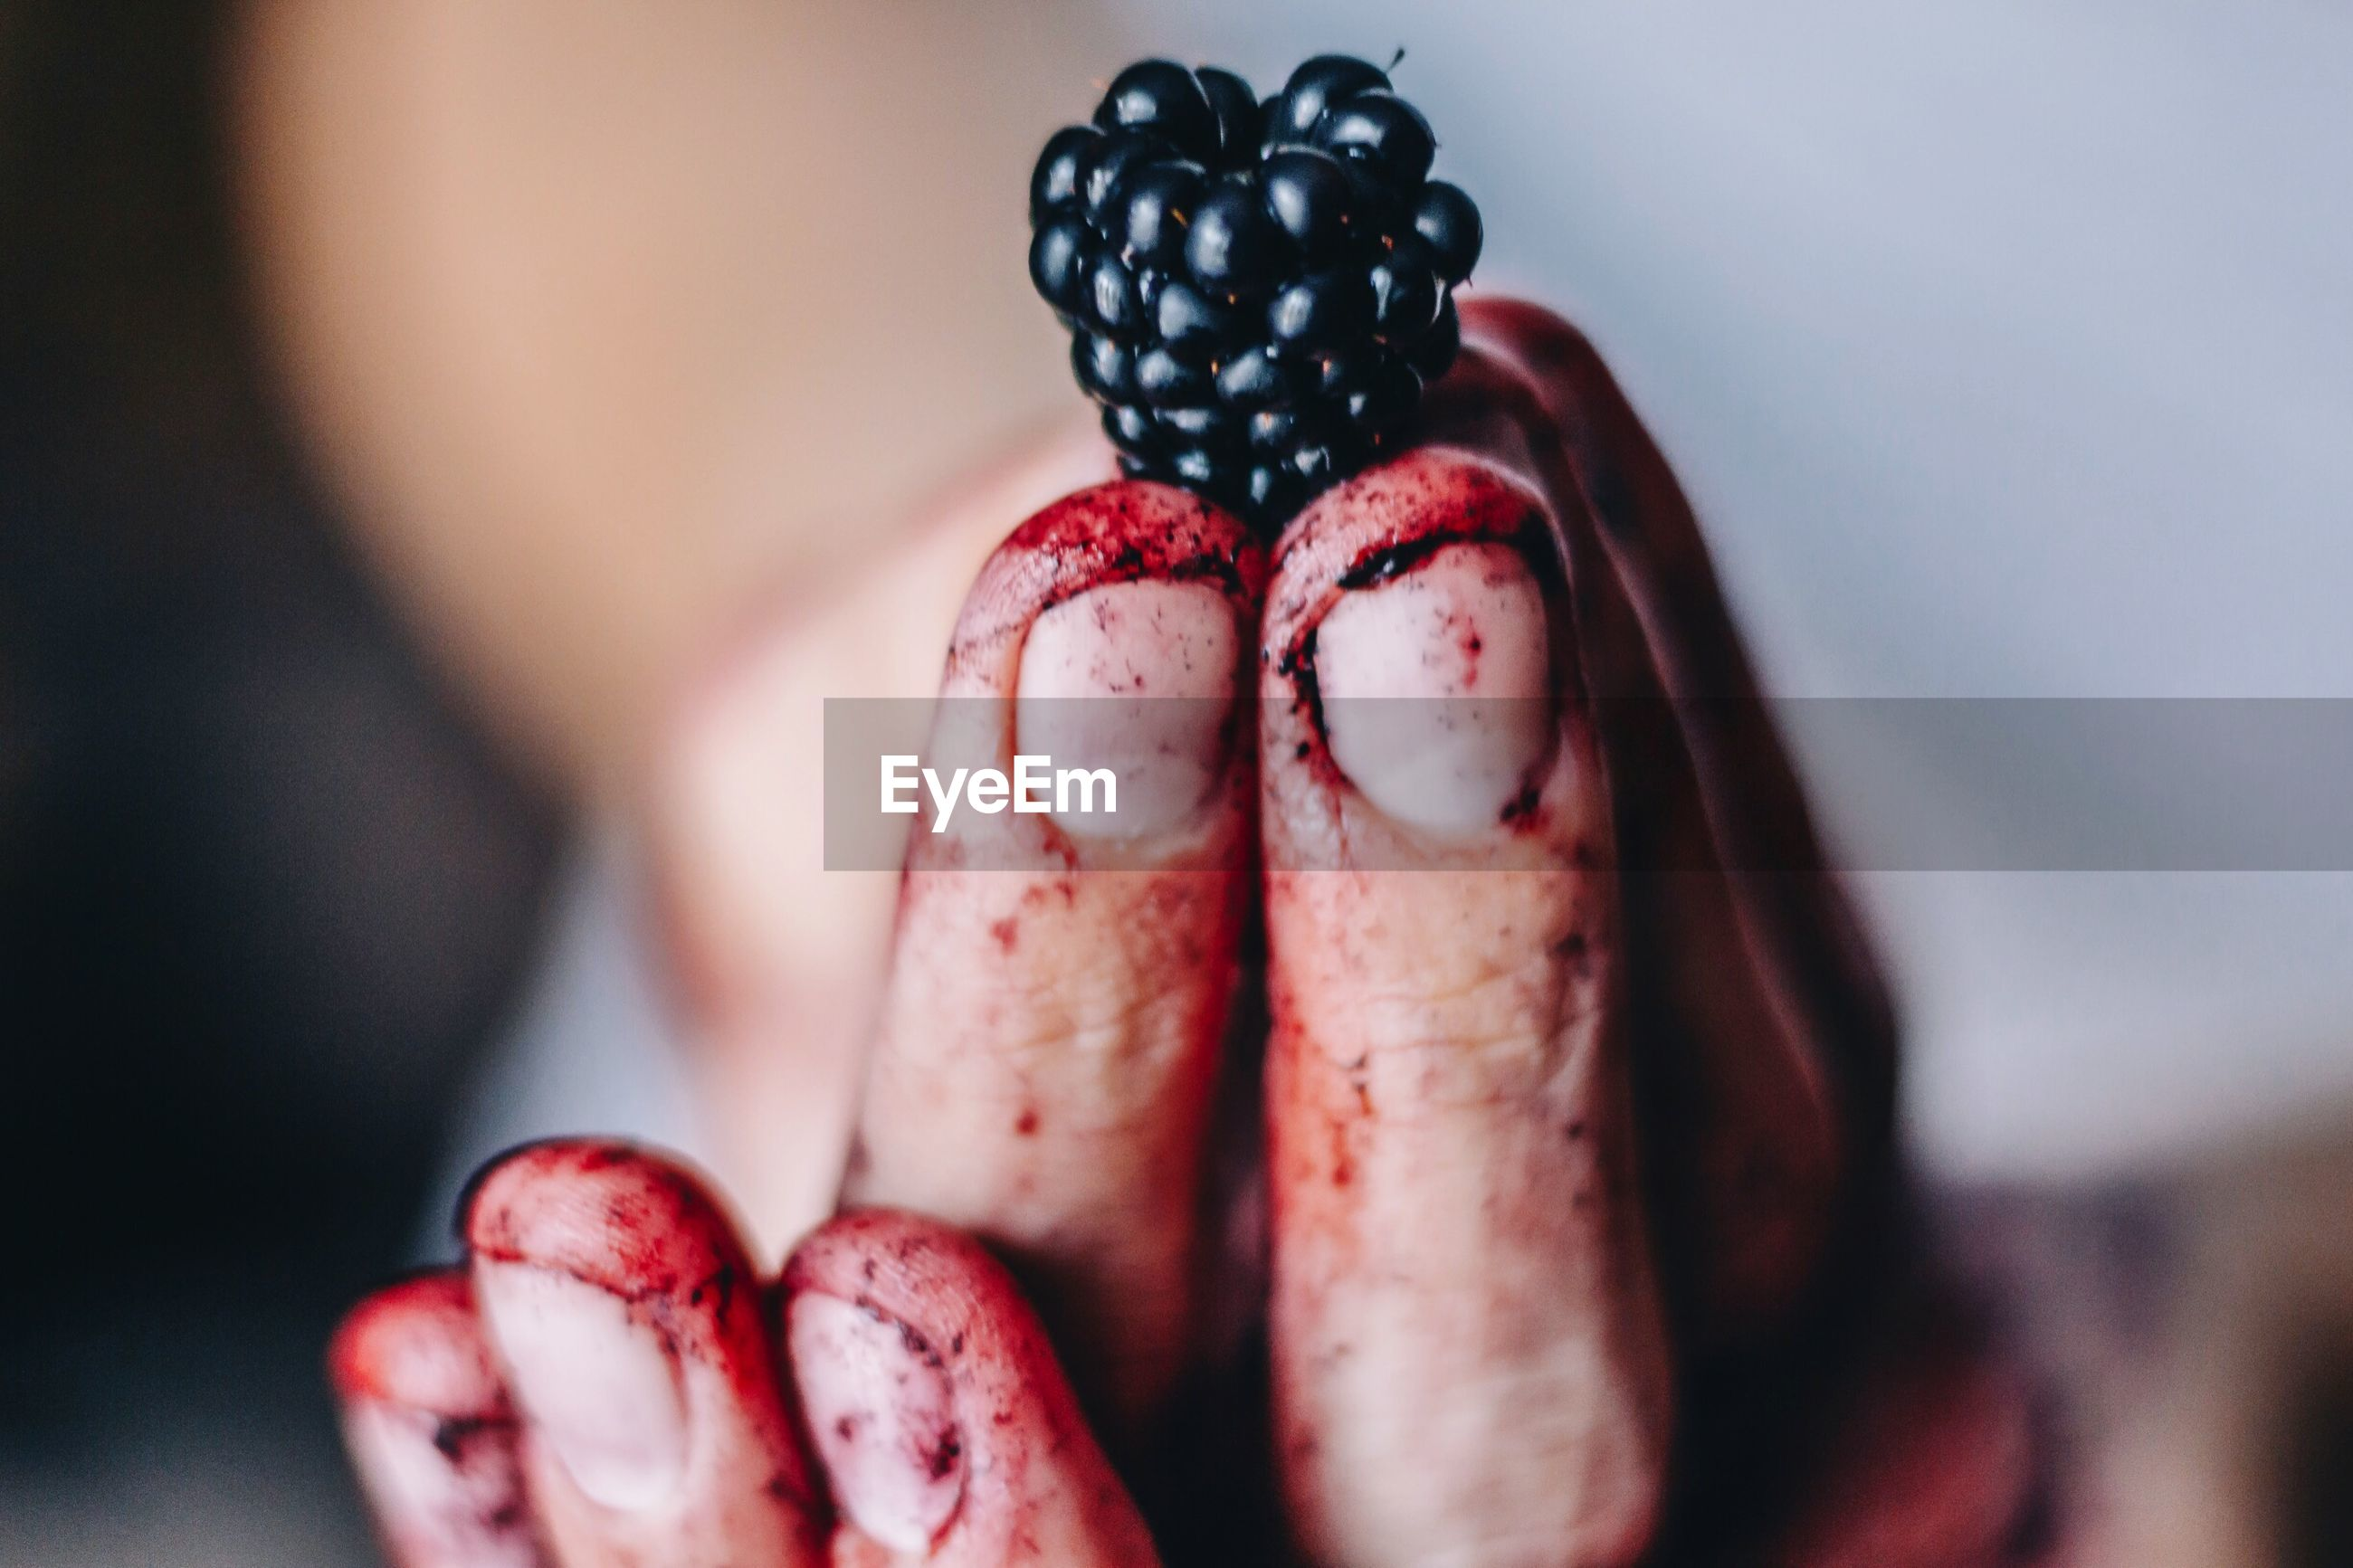 Cropped image of dirty hand holding blackberry